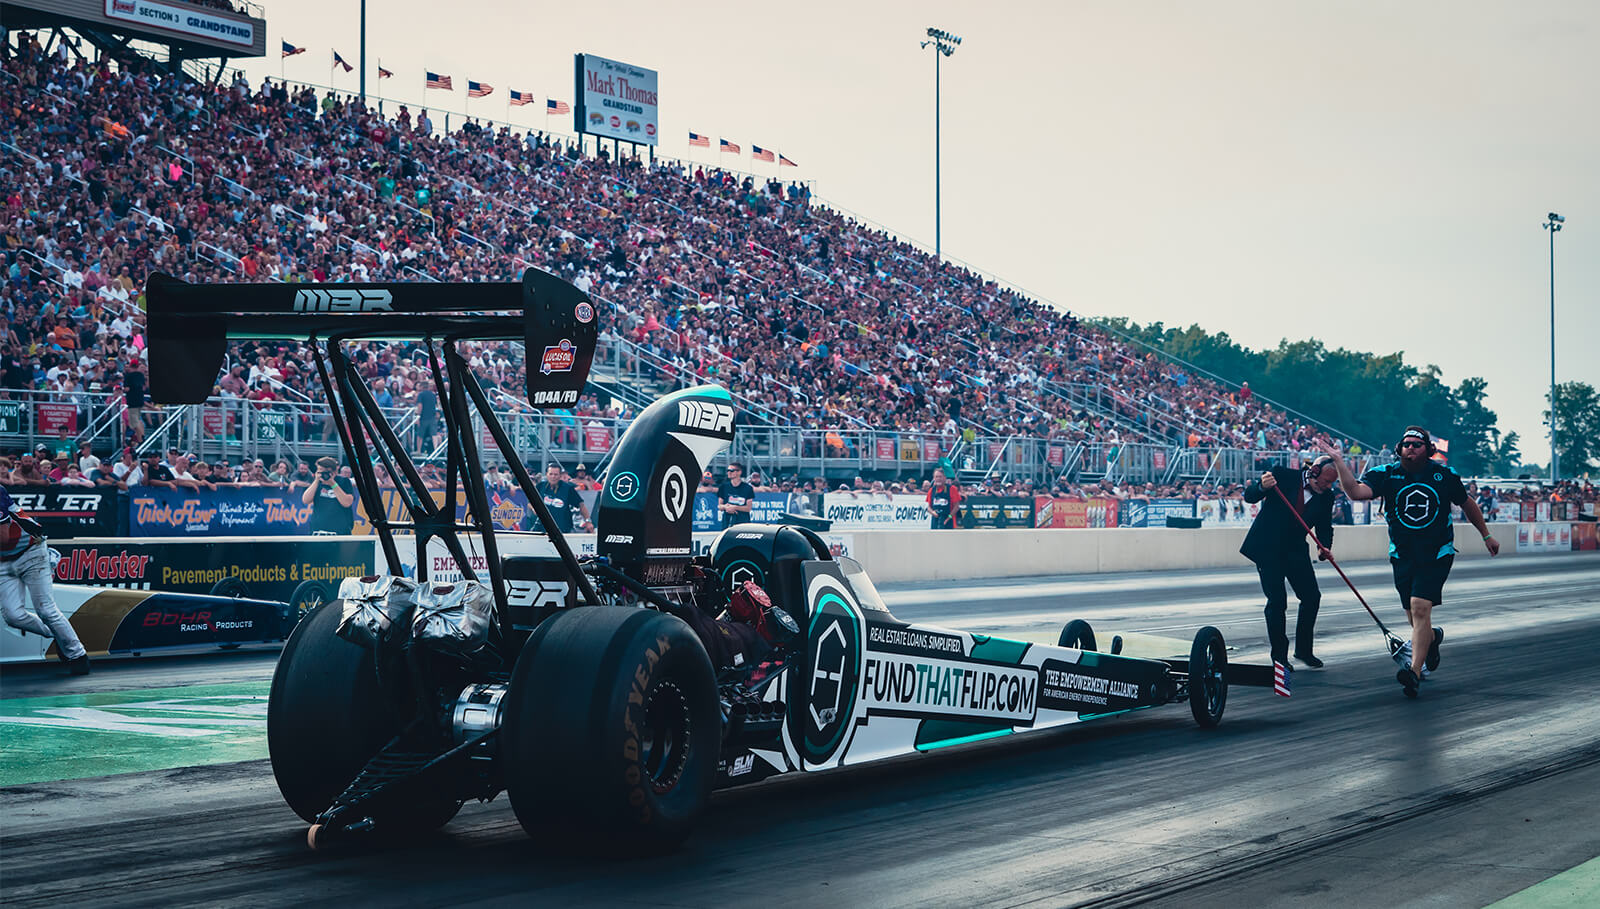 The Fund That Flip / Empowerment Alliance A/fuel dragster was on display in front of over 50,000 people at the 44th running of the Kelly Services Night Under Fire.